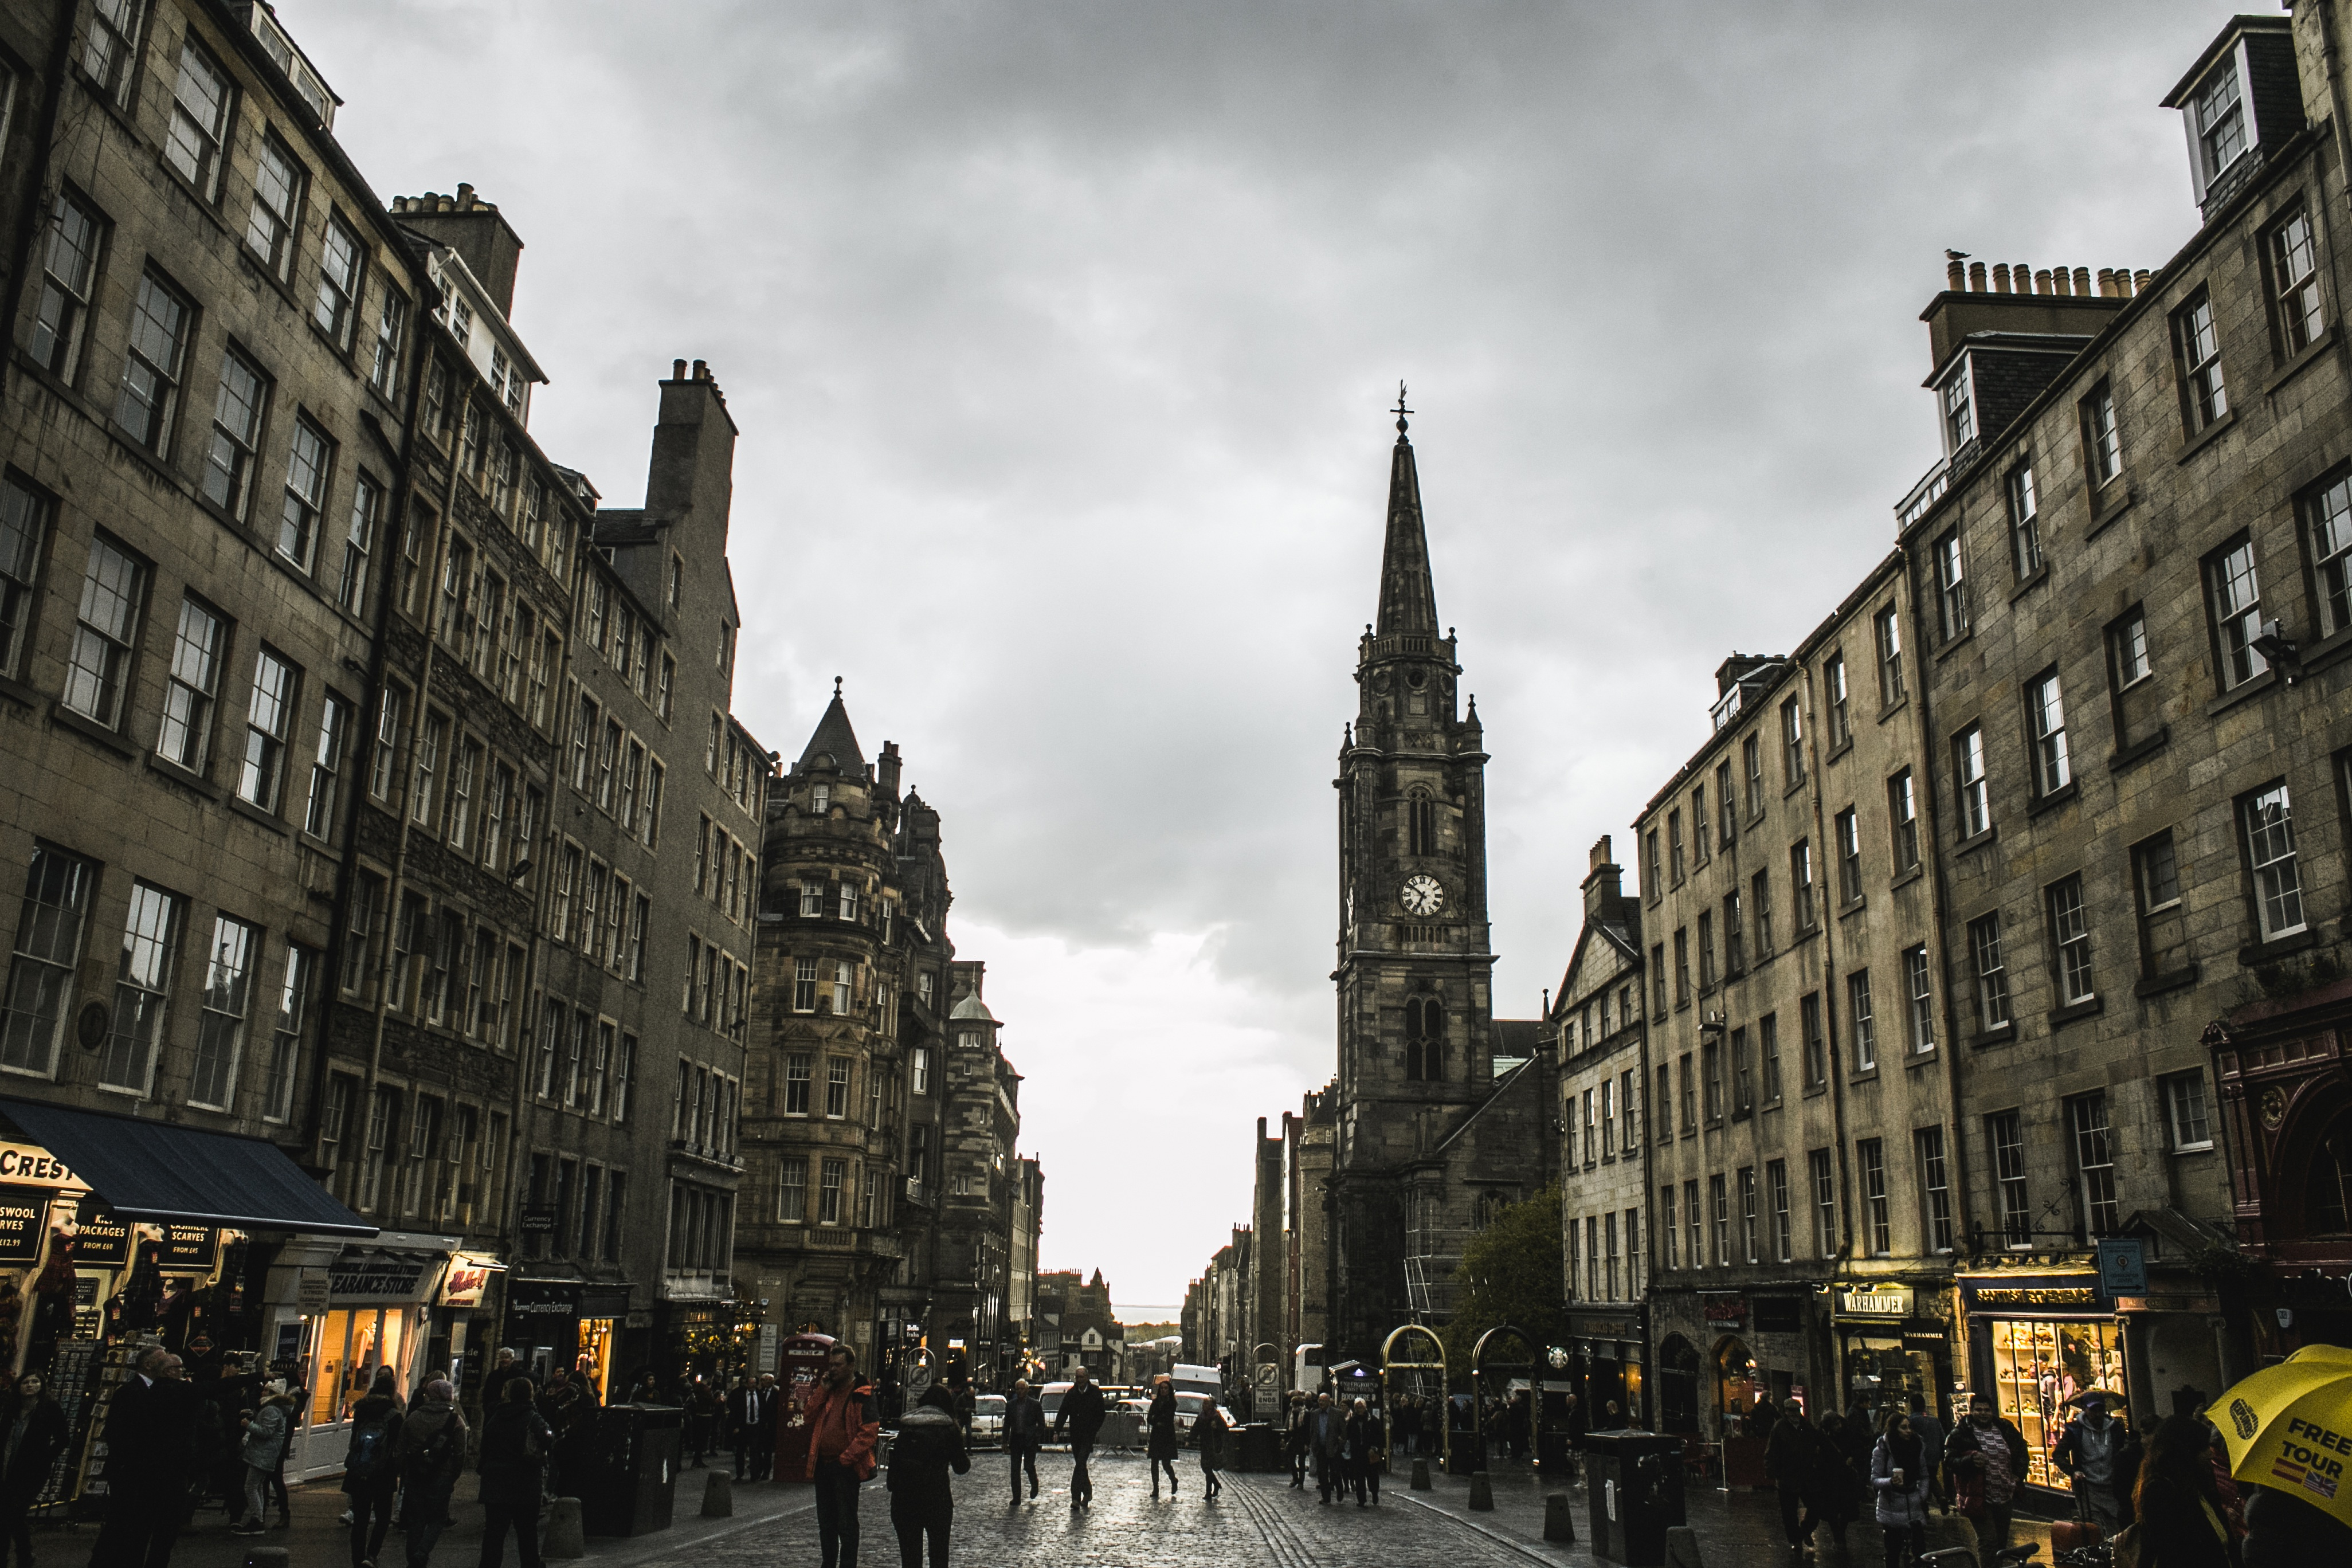 Explore the street of Royal Mile, things to do in Edinburgh